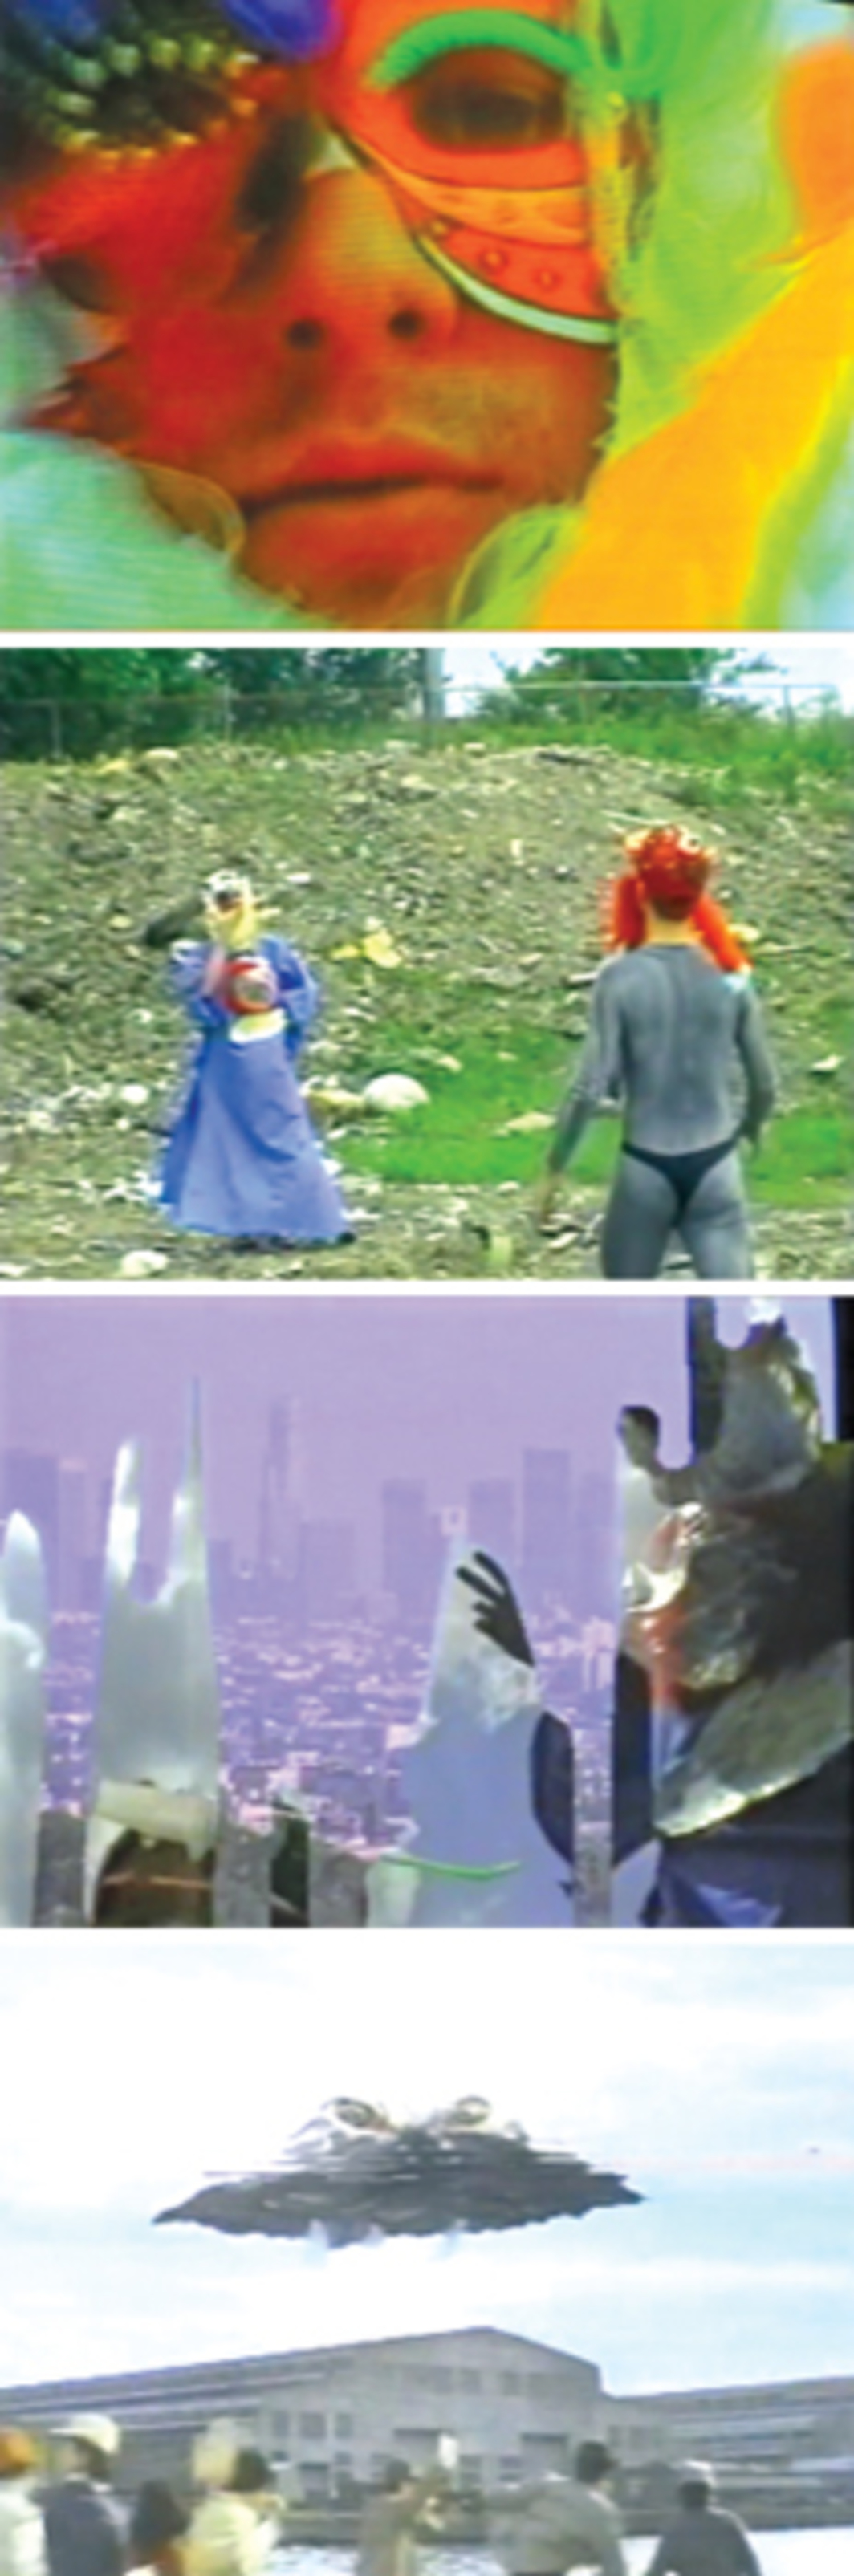 *Four stills from Charles Irvin's _Aphrodite's Child--The Four Horsemen_, 1999*, video, color, sound, 6 minutes 7 seconds.